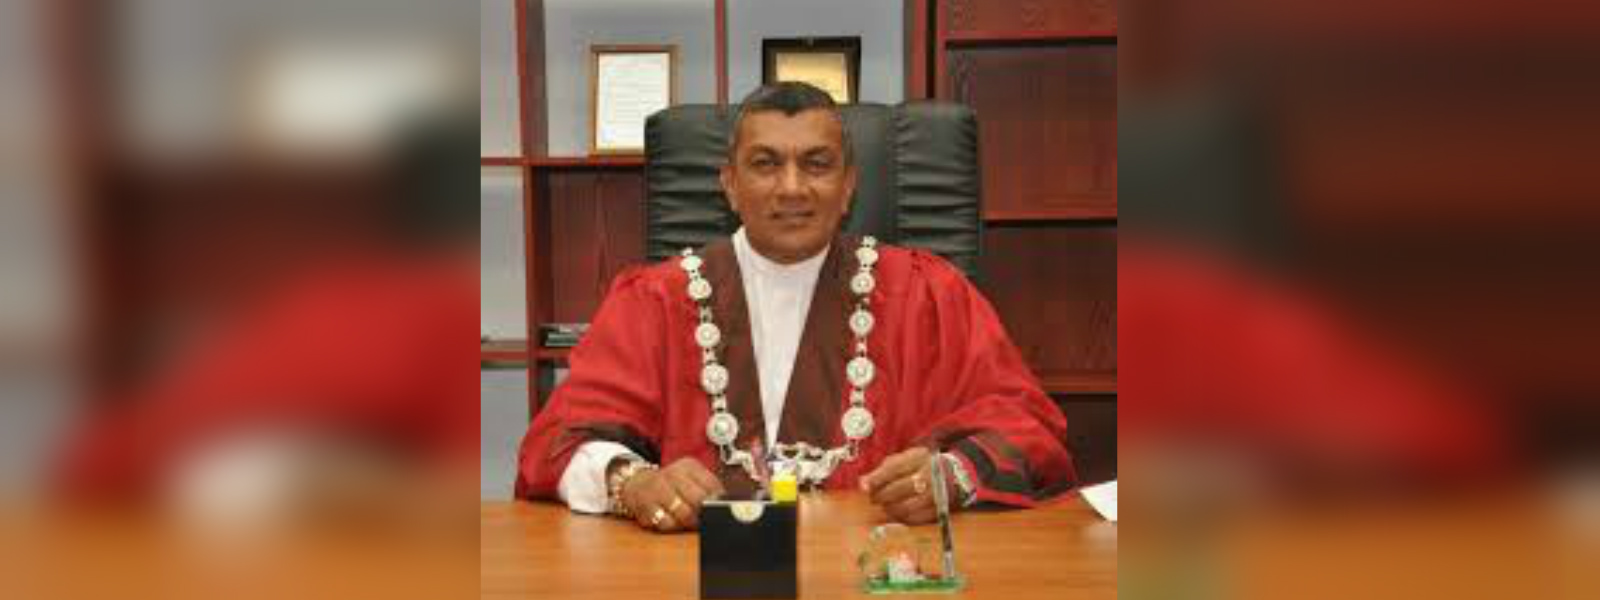 Matale Mayor removed following an inquiry by Governor